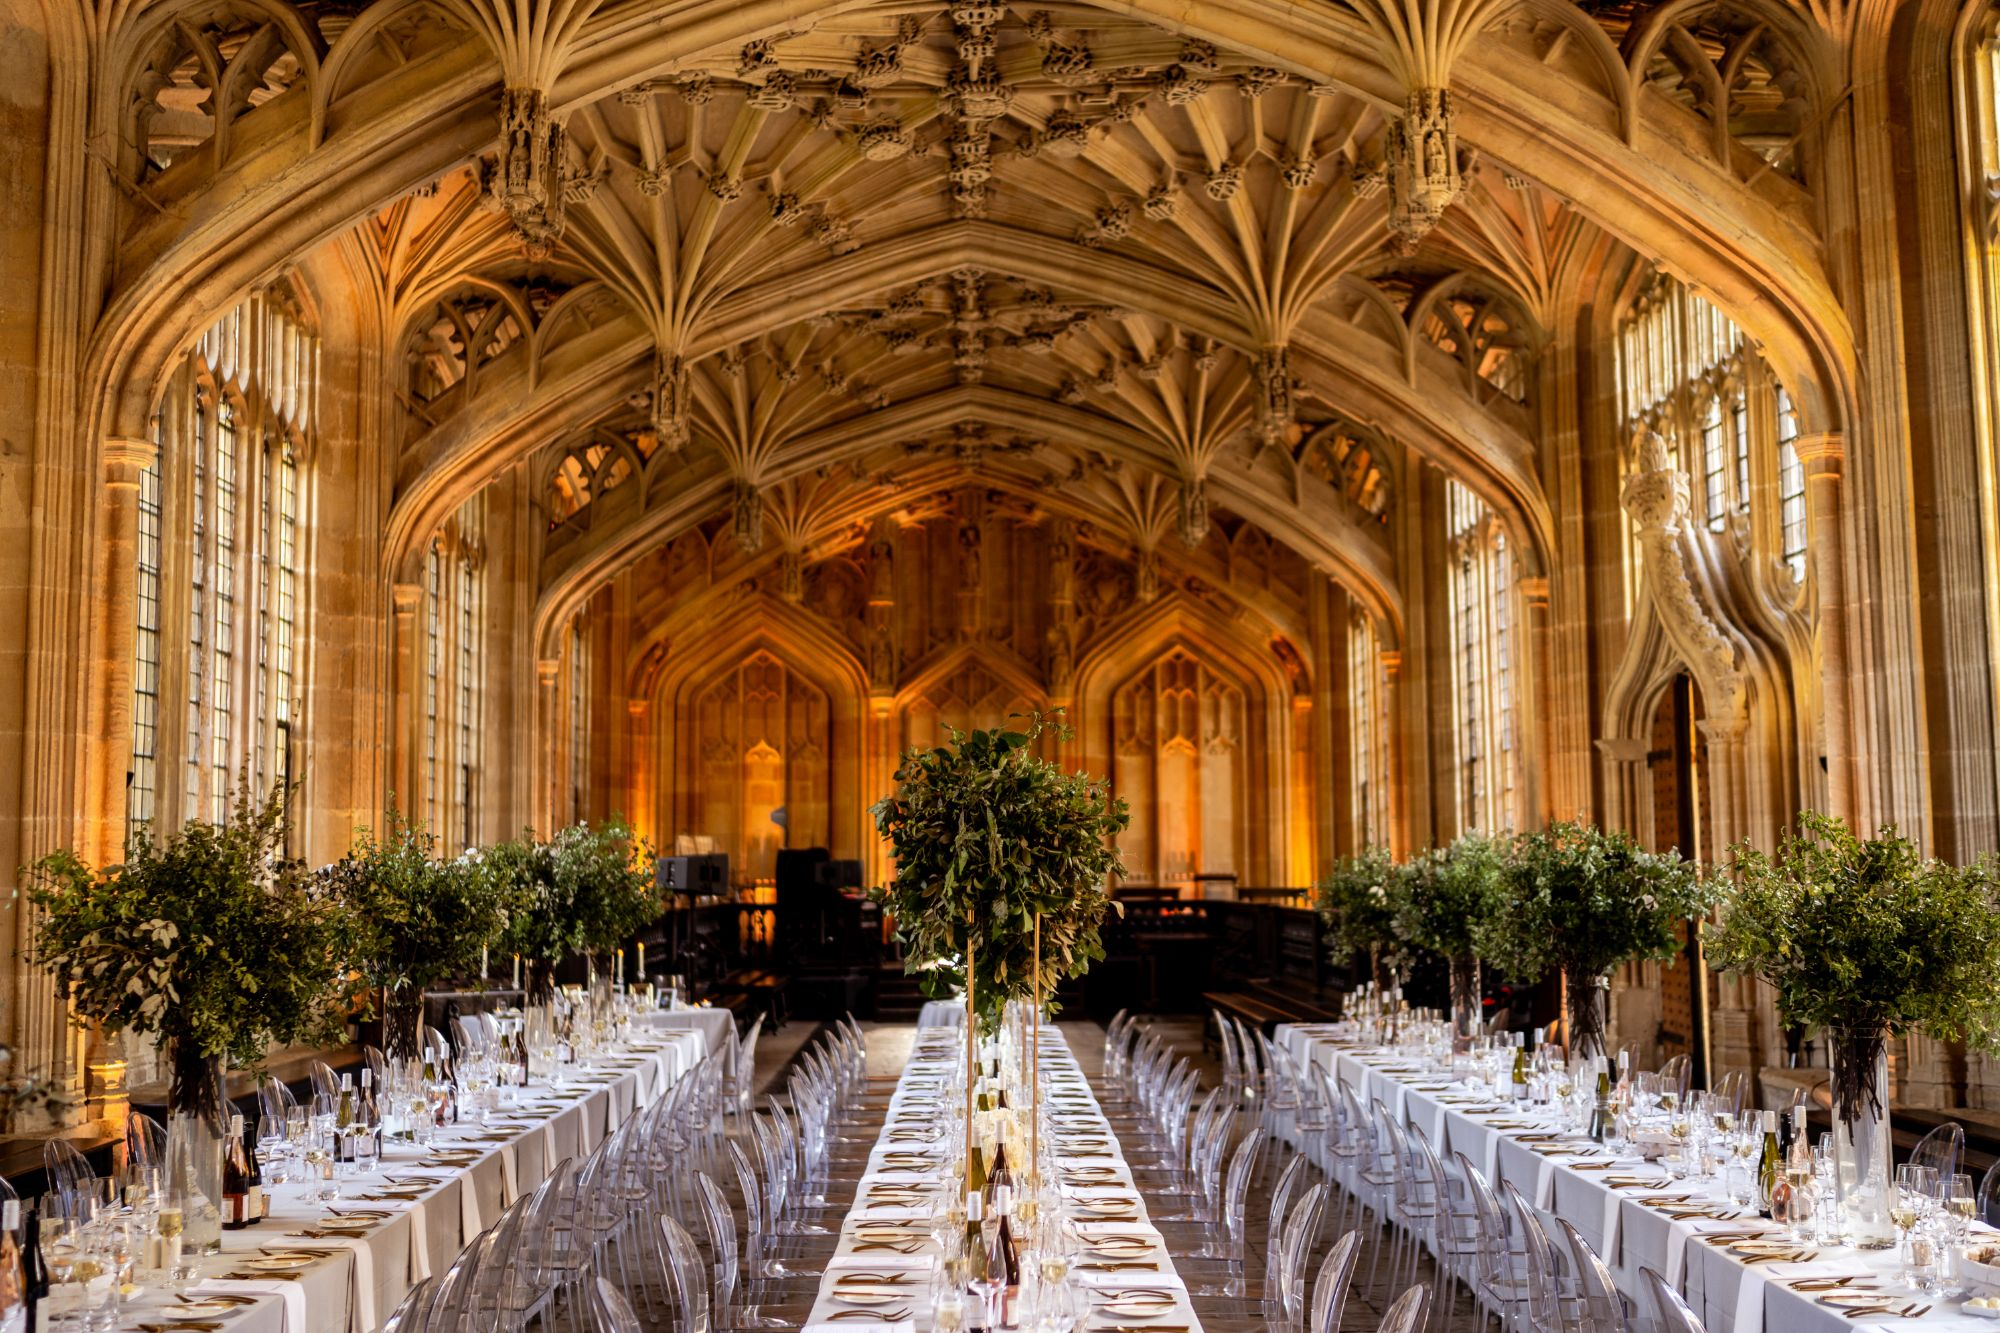 Oxford-wedding-Bodleian-Library-dining-tables-set-for -modern-wedding-Alway